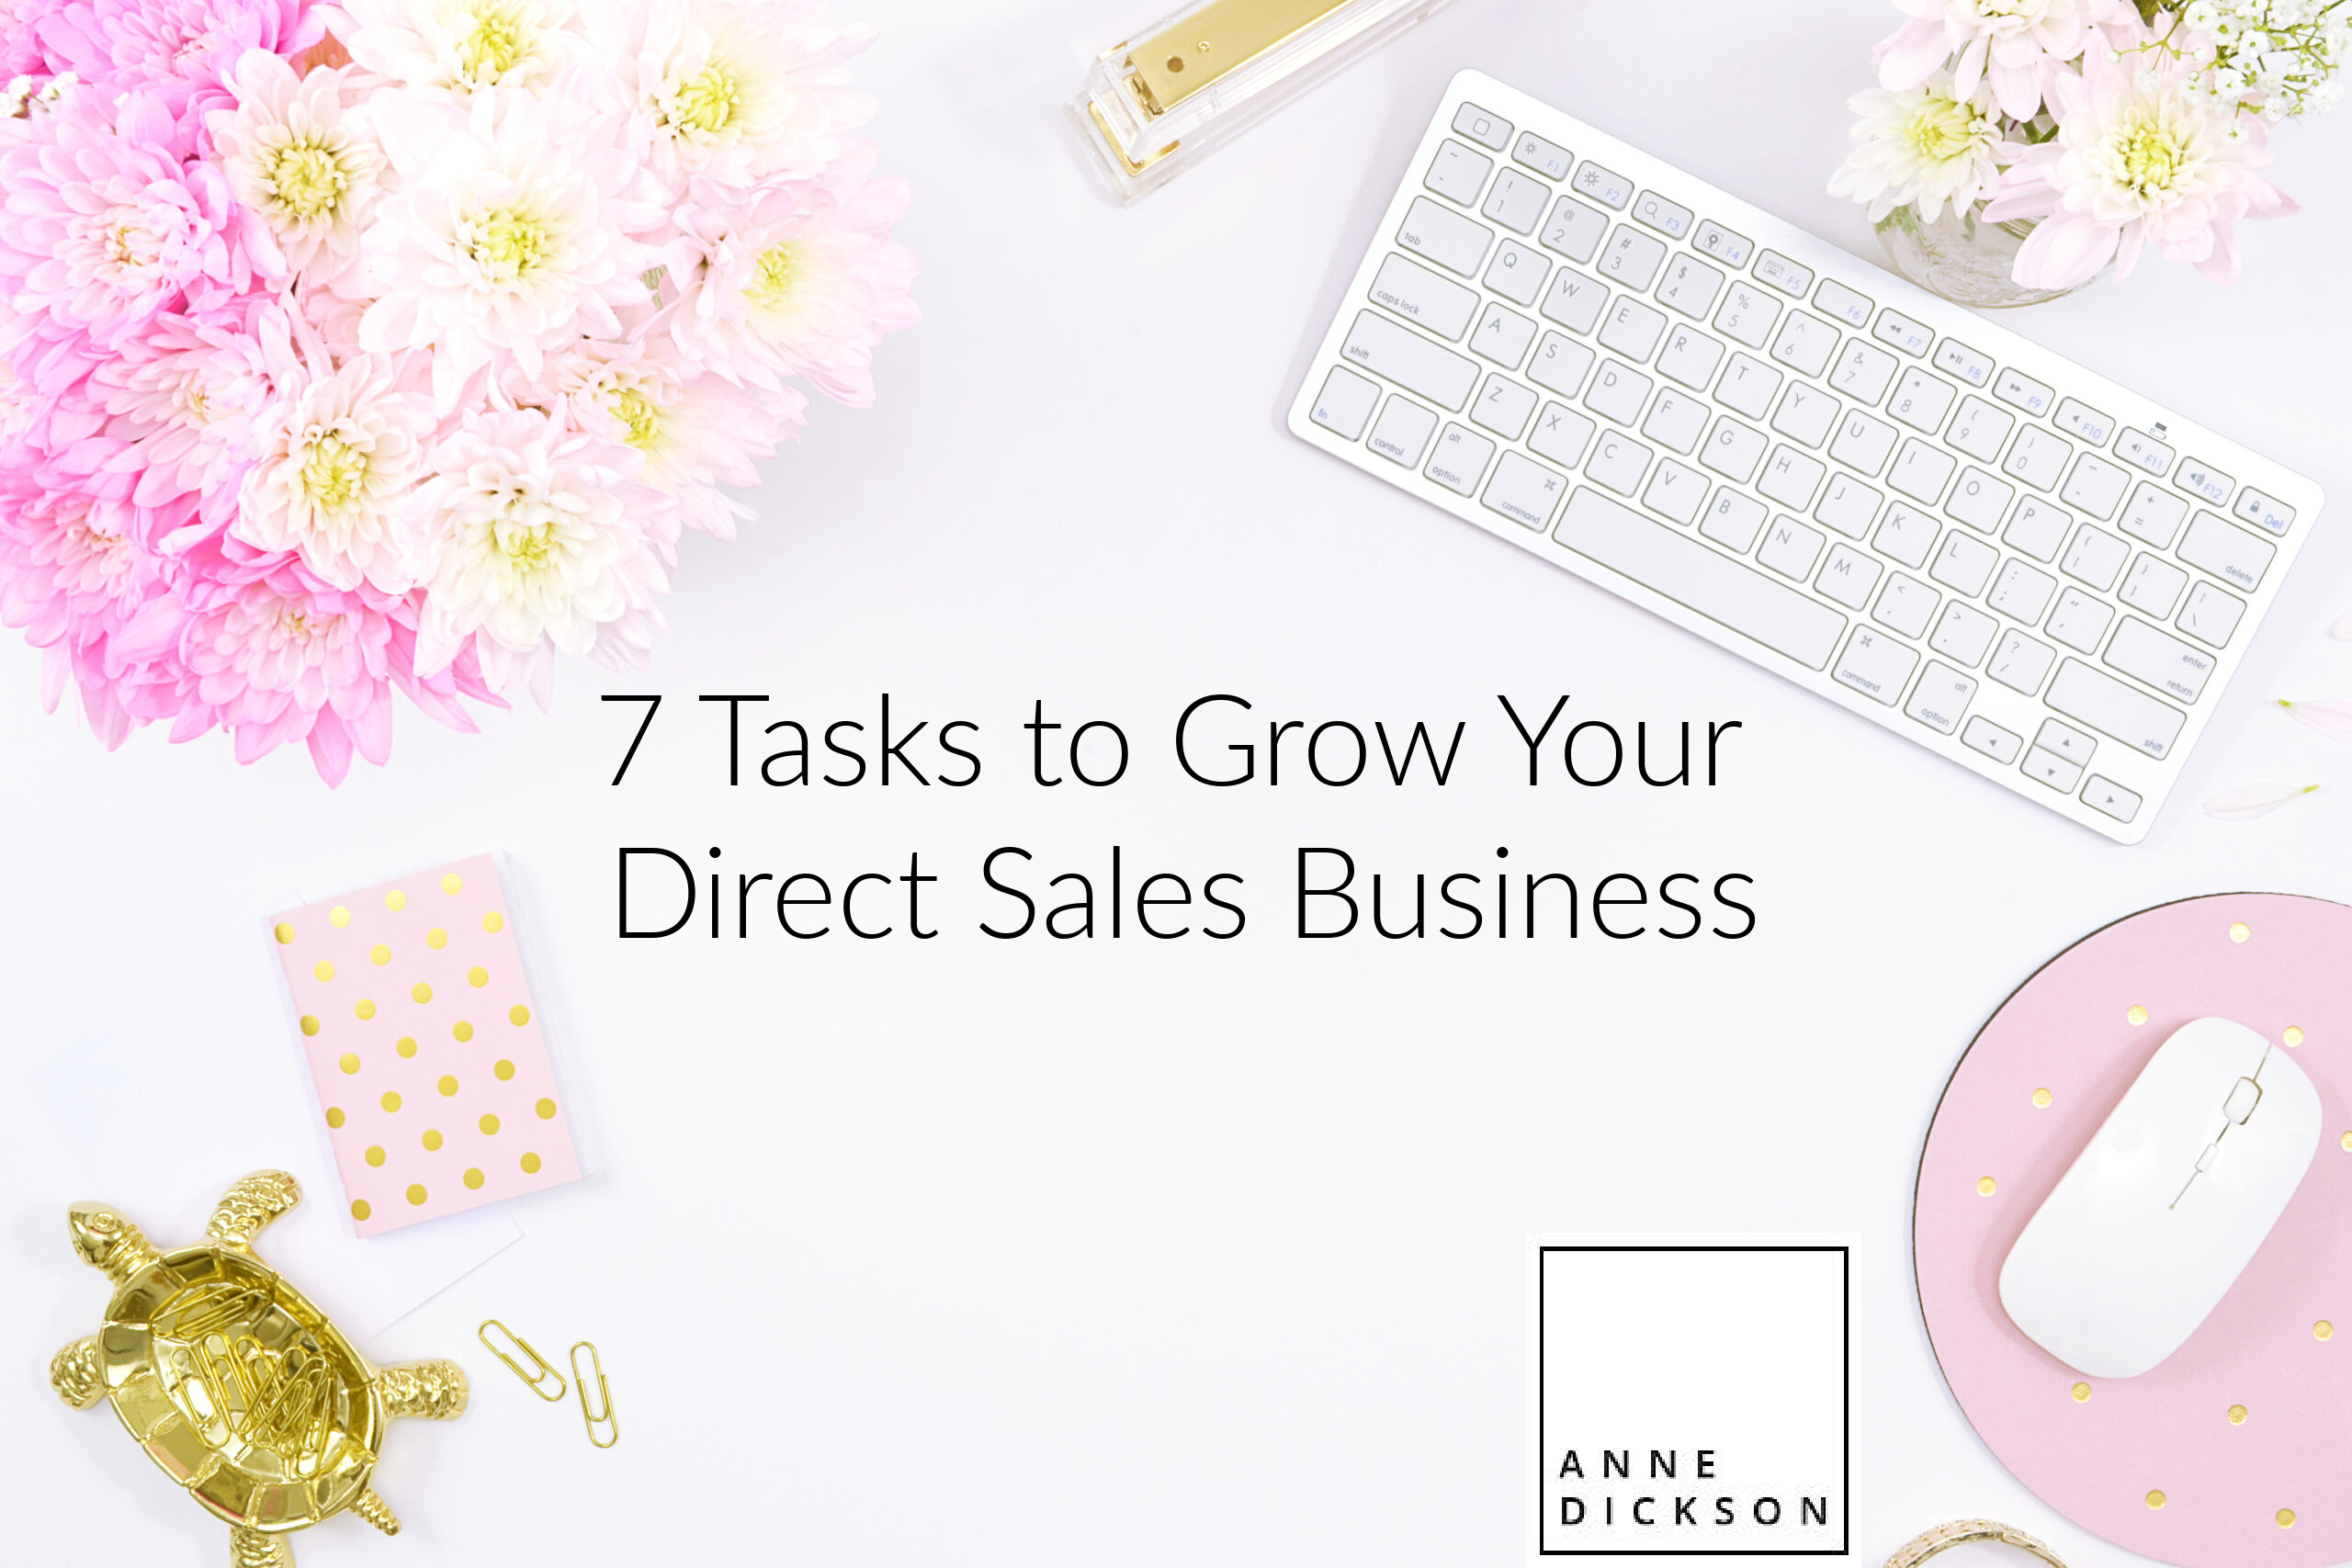 7 Tasks to grow your Direct Sales Business